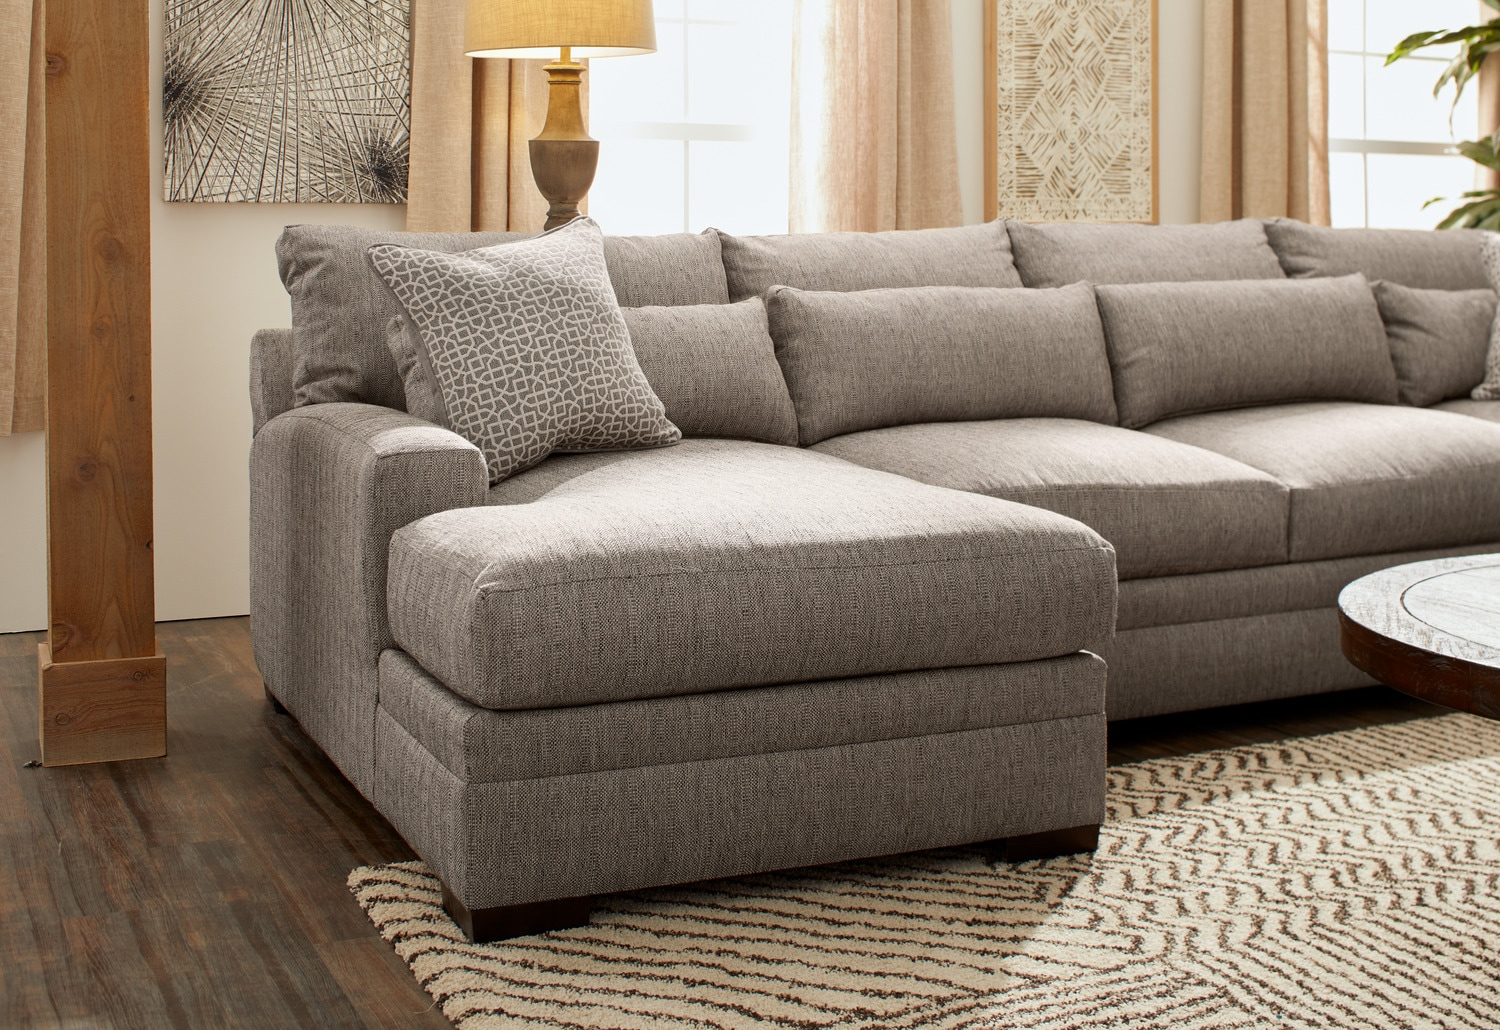 winston 4 piece sectional with chaise value city furniture and rh valuecityfurniture com